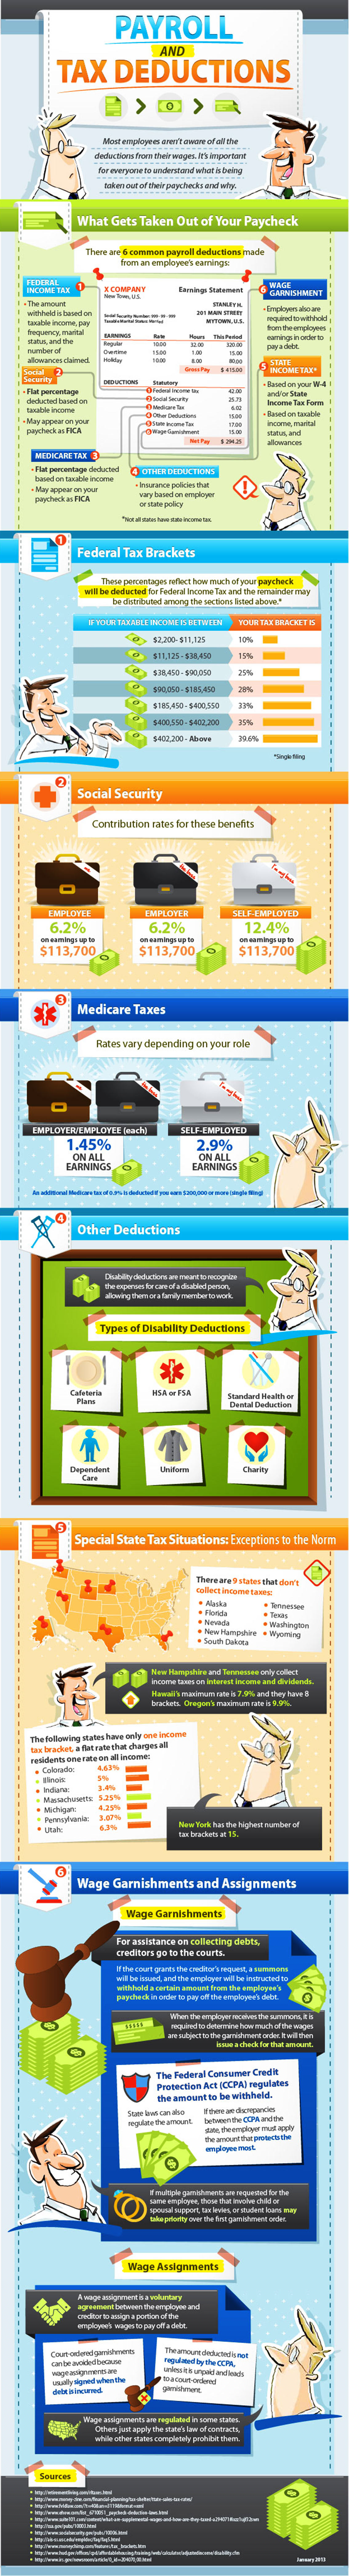 Payroll and Tax Deductions From Your Payslip Explained Infographic